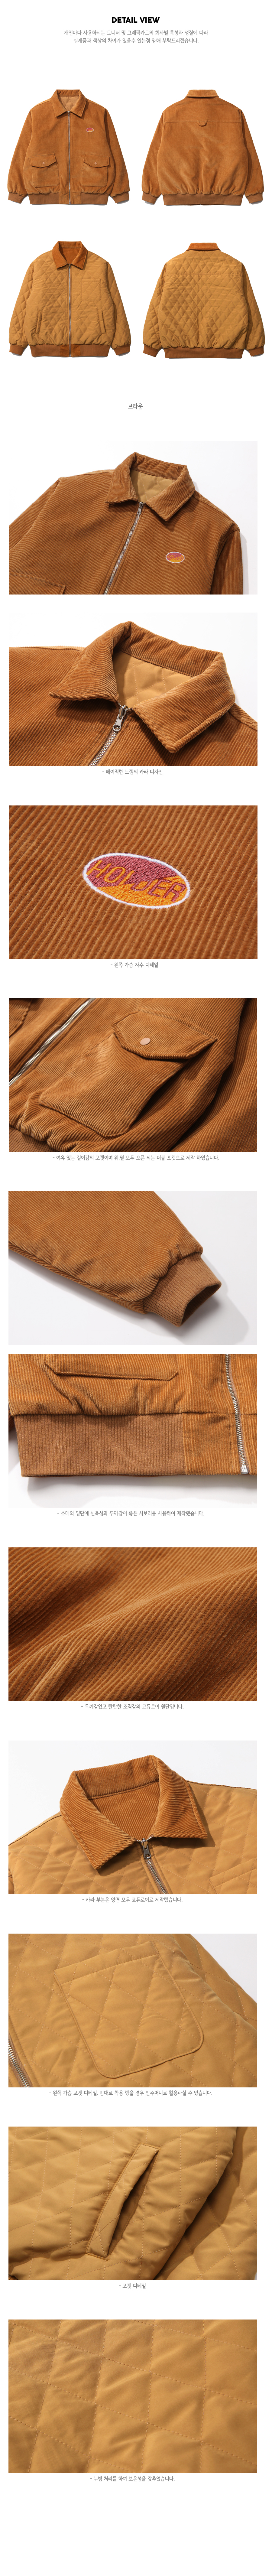 20180904_corduroy_jumper_detail_brown_yh.jpg